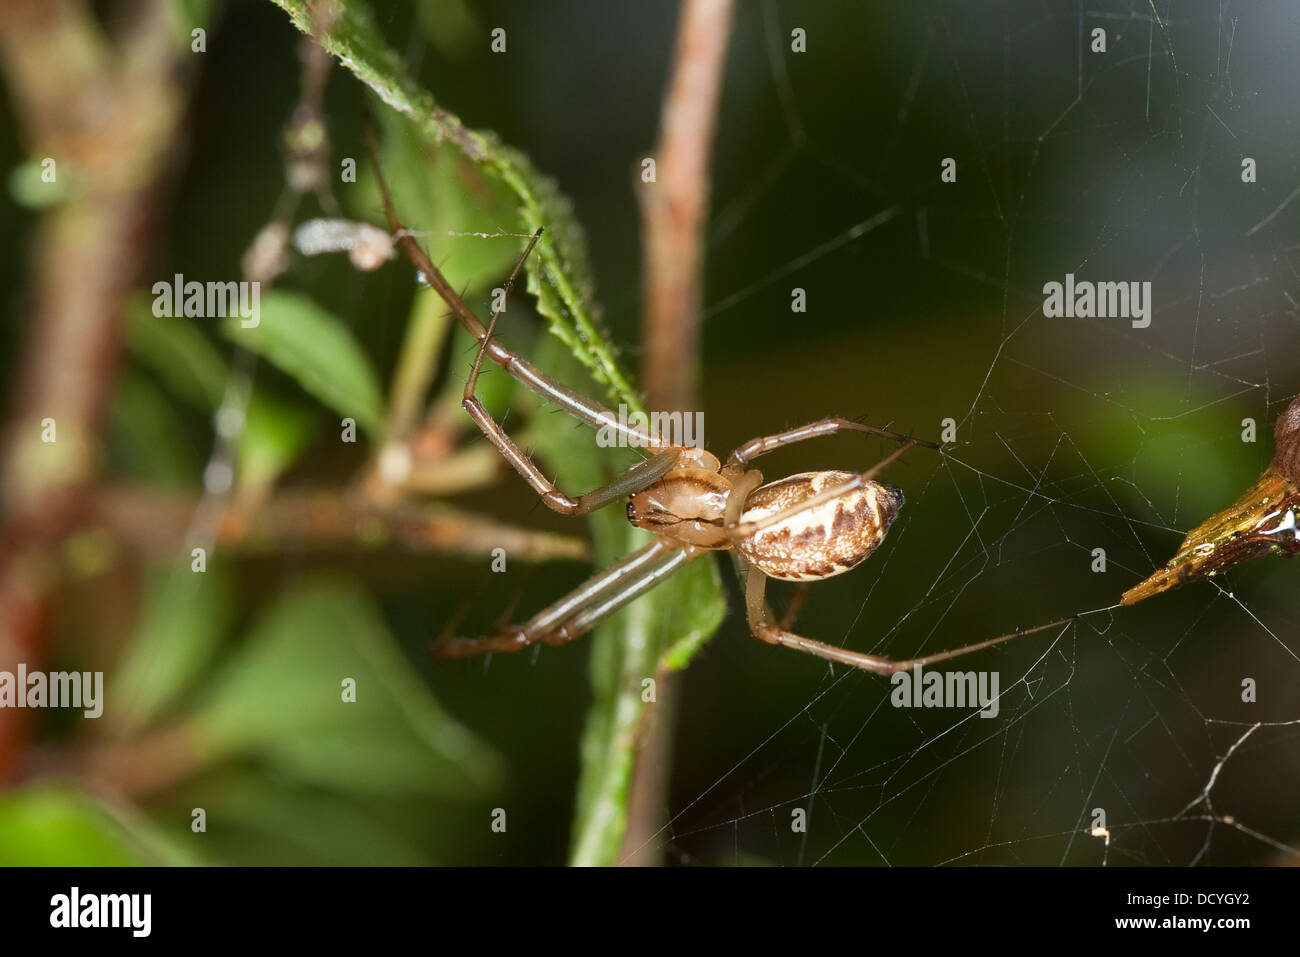 sheet-web spider, Money Spider, sheet-web weaver, line-weaving spider, line weaver, Baldachinspinne, Linyphia triangularis - Stock Image